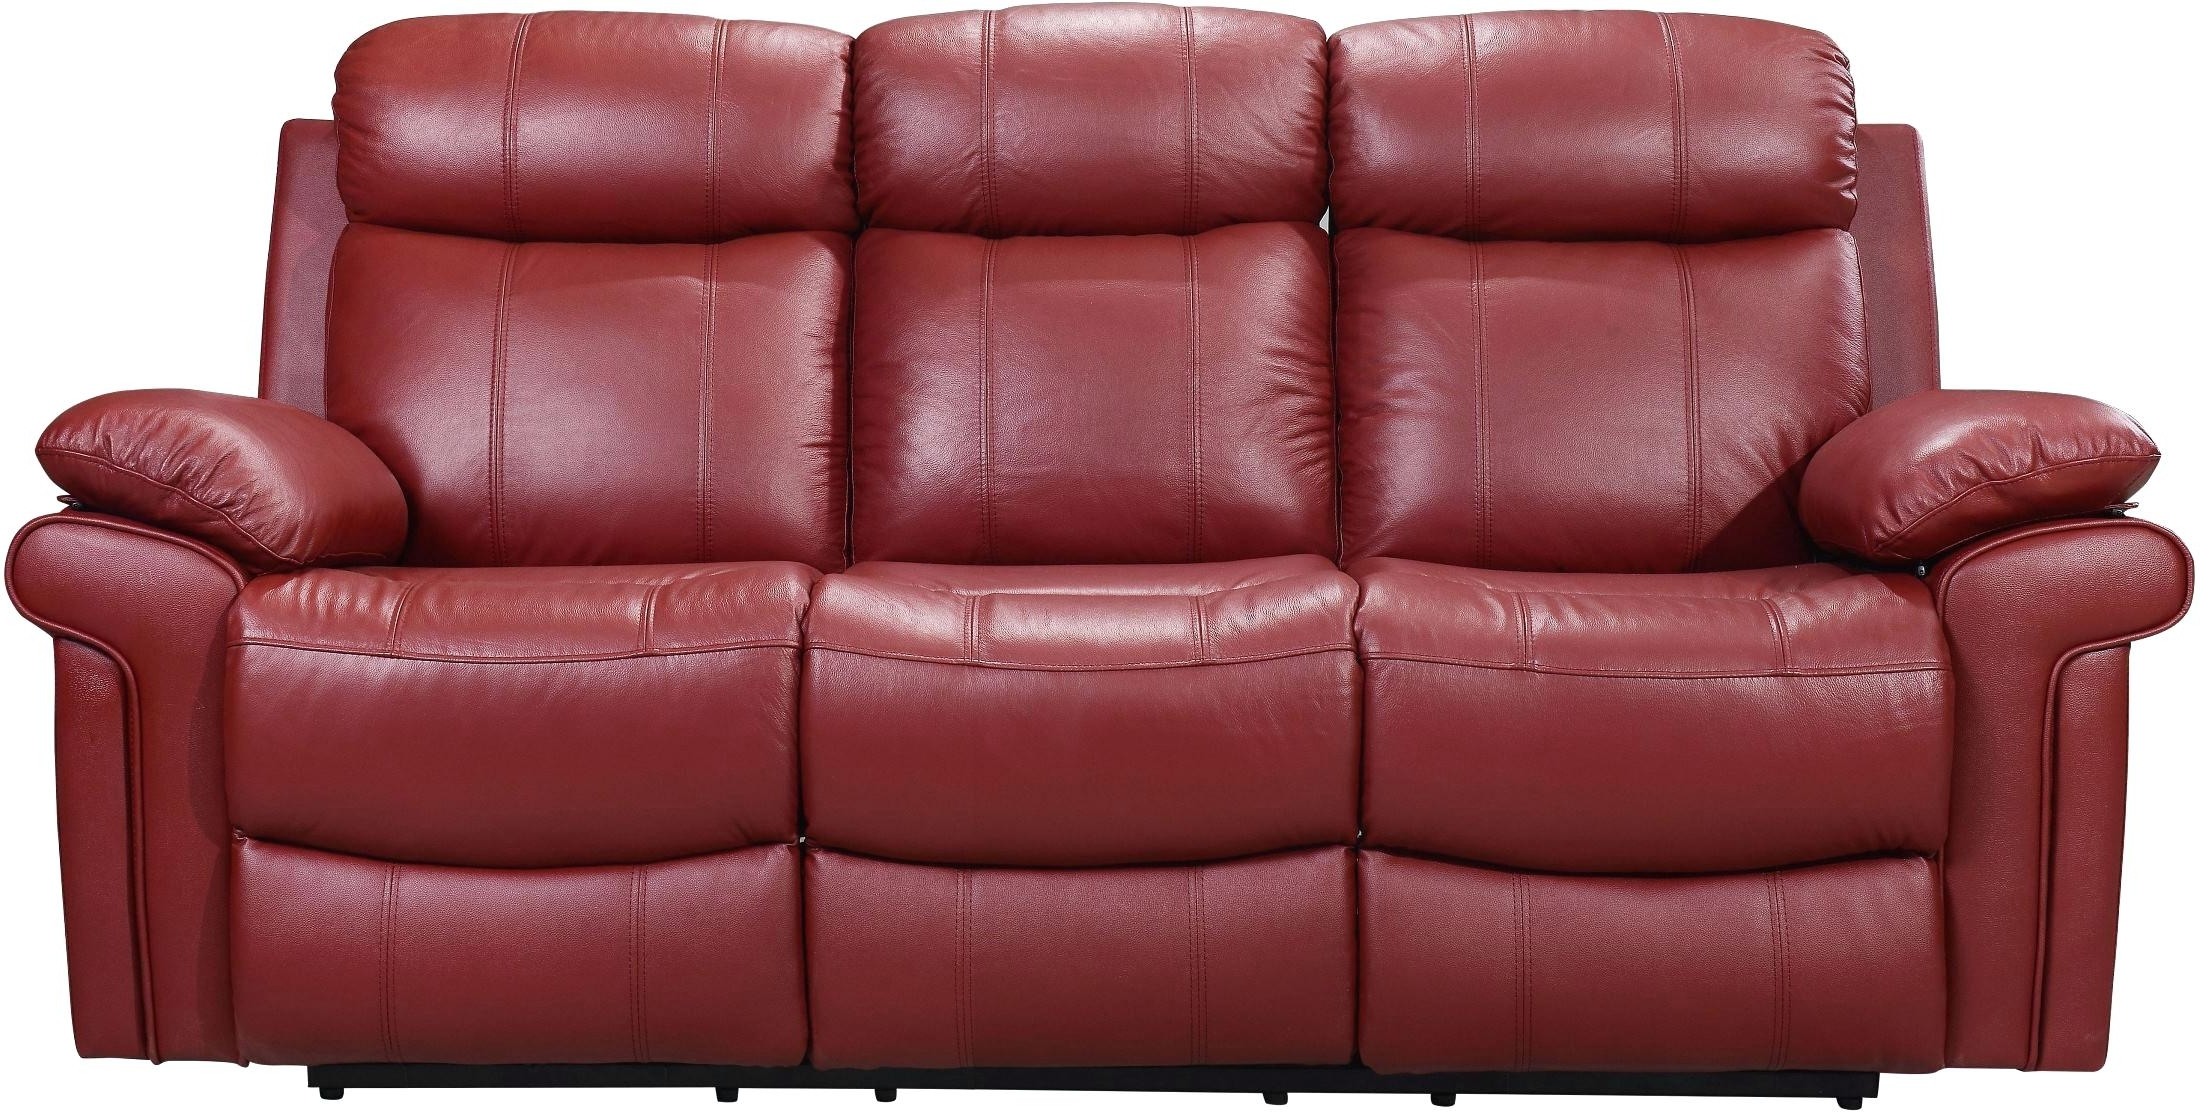 Preferred Red Leather Recliner Red Faux Leather Reclining Sofa Red Leather Intended For Red Leather Reclining Sofas And Loveseats (View 8 of 15)